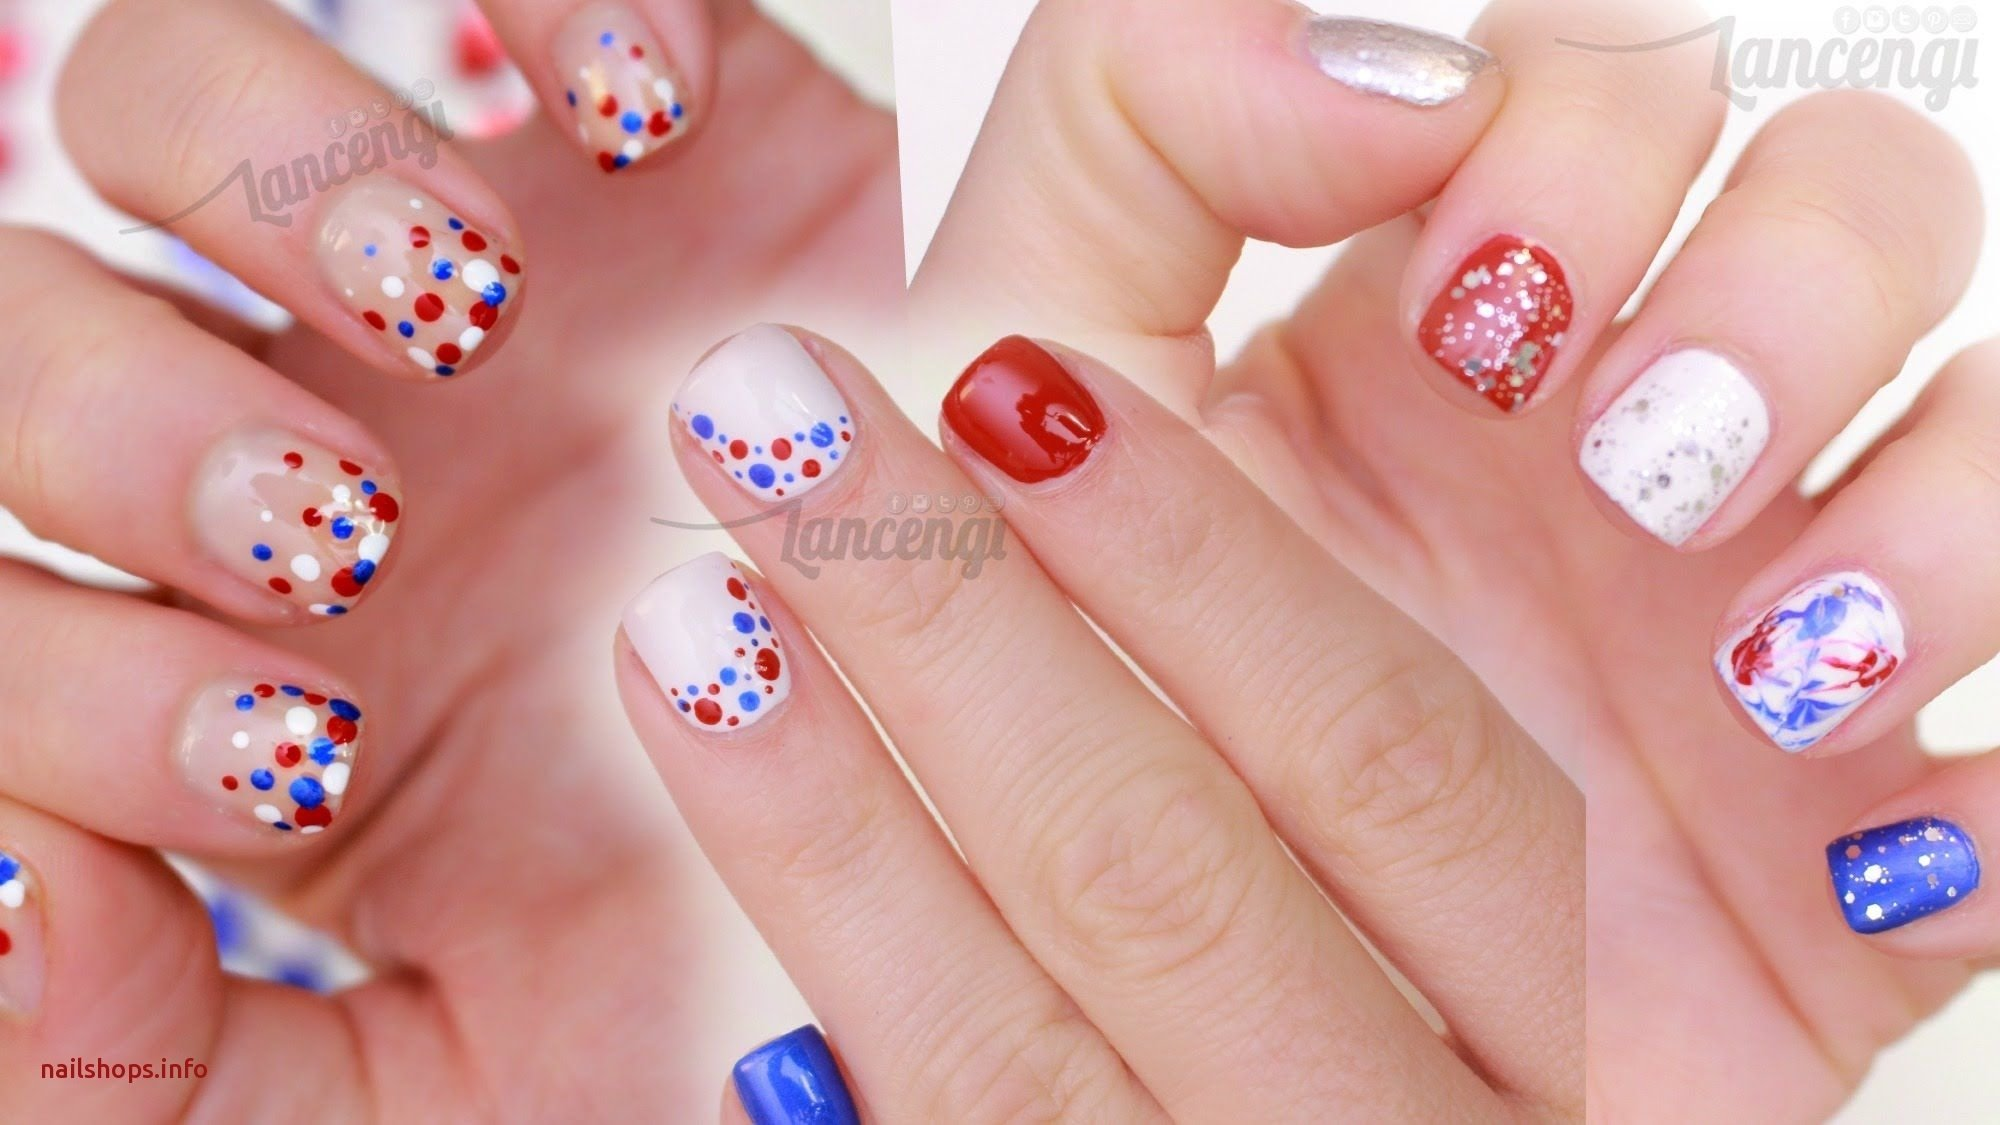 10 Awesome Fourth Of July Nail Art Ideas fourth of july nail art ideas beautiful cute easy nail art for